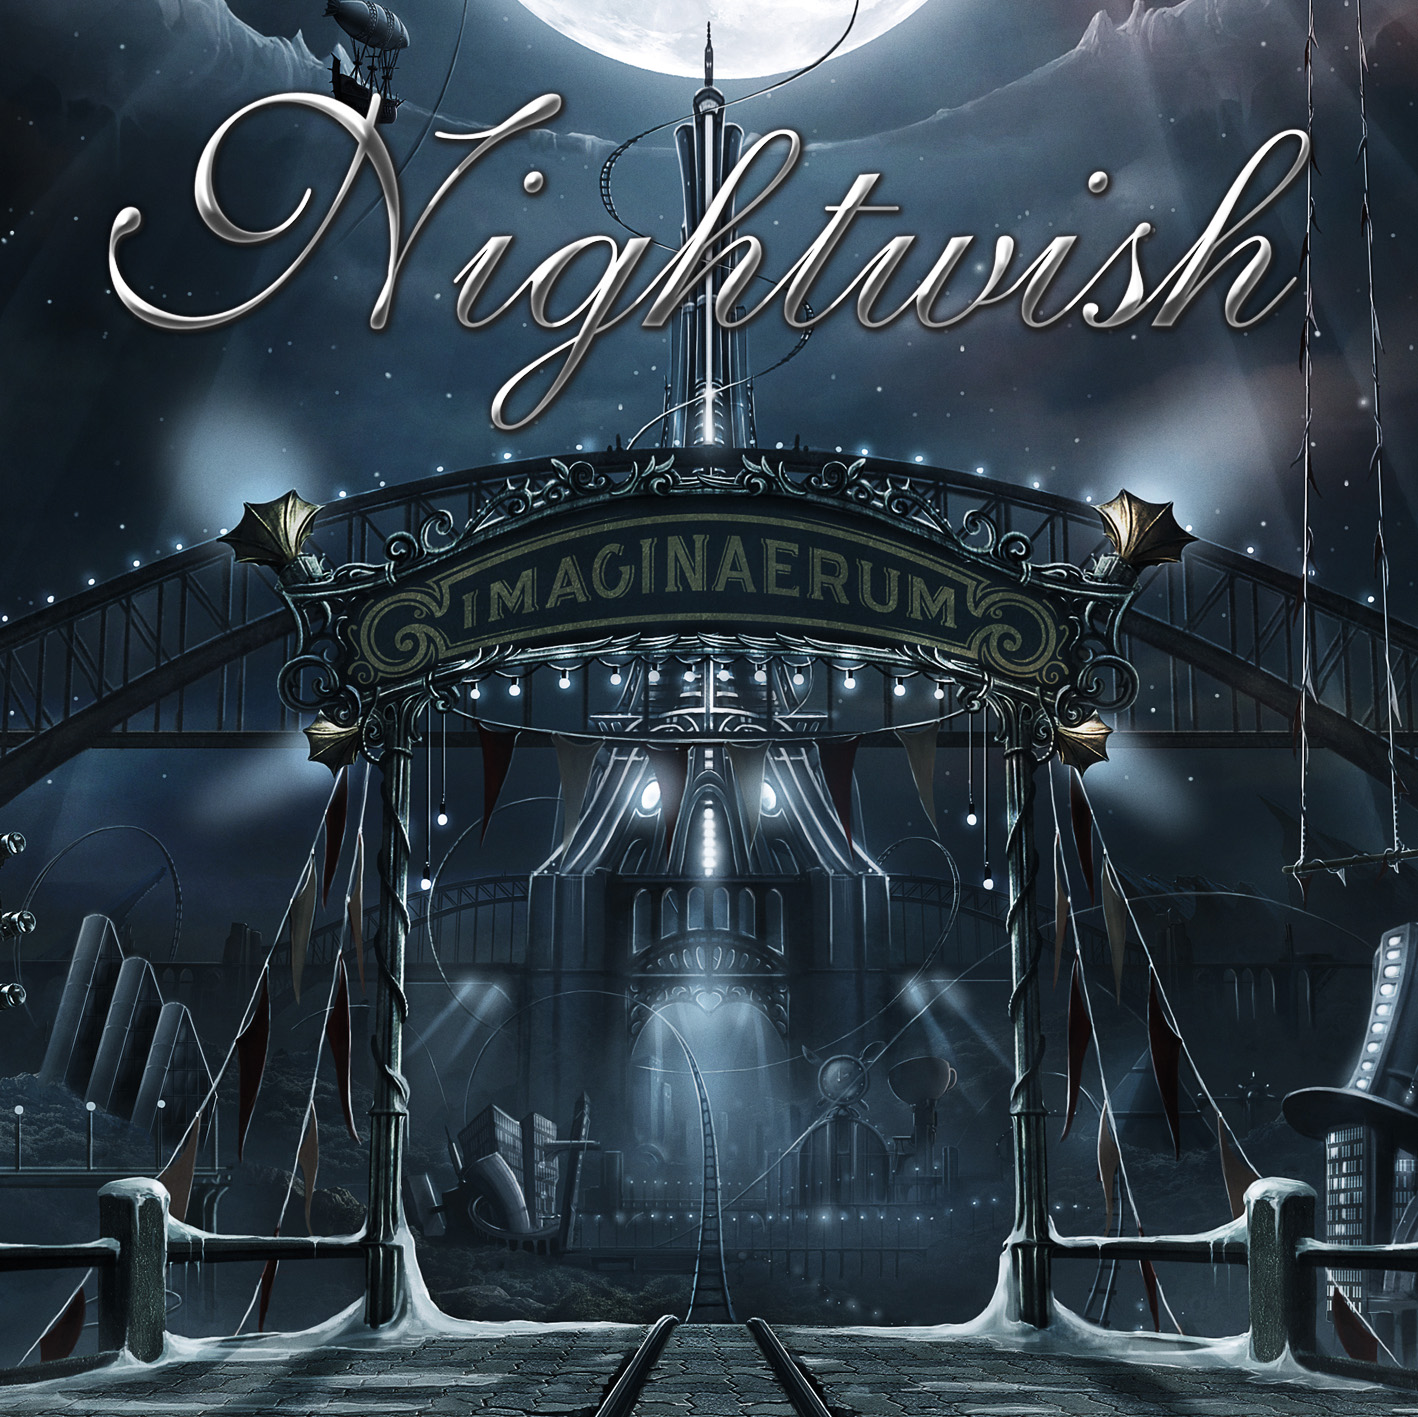 Nightwish Imaginaerum Artwork